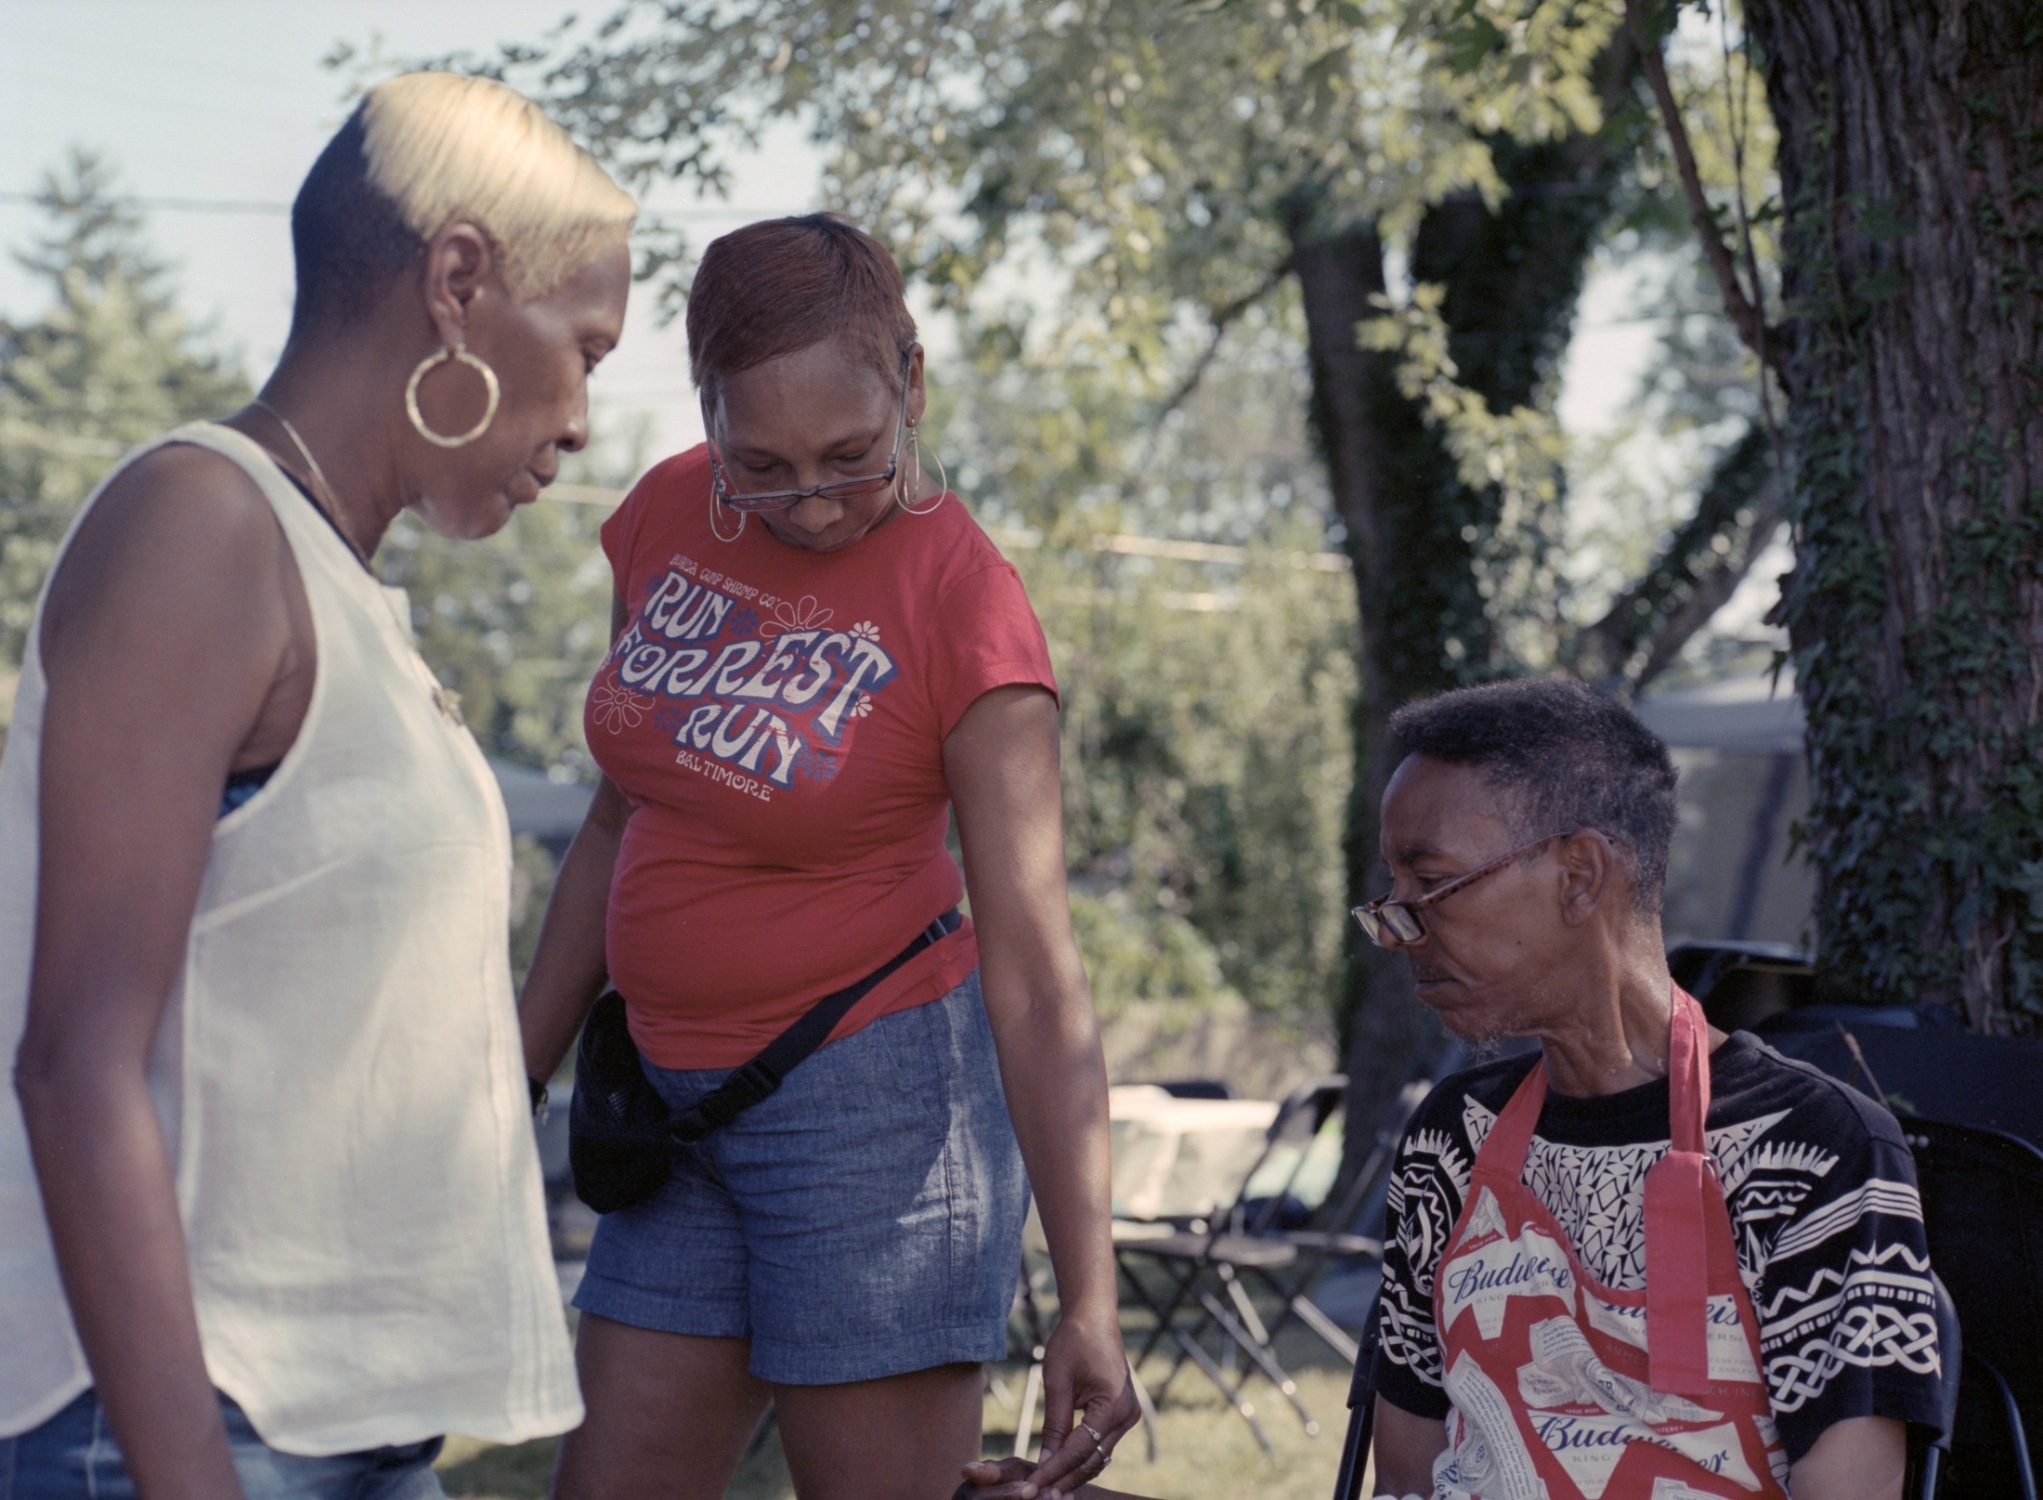 My Mother giving Uncle Rod ice at the Family Cookout. He felt lightheaded. Aunt Cheryl trying to make him feel better. 2018